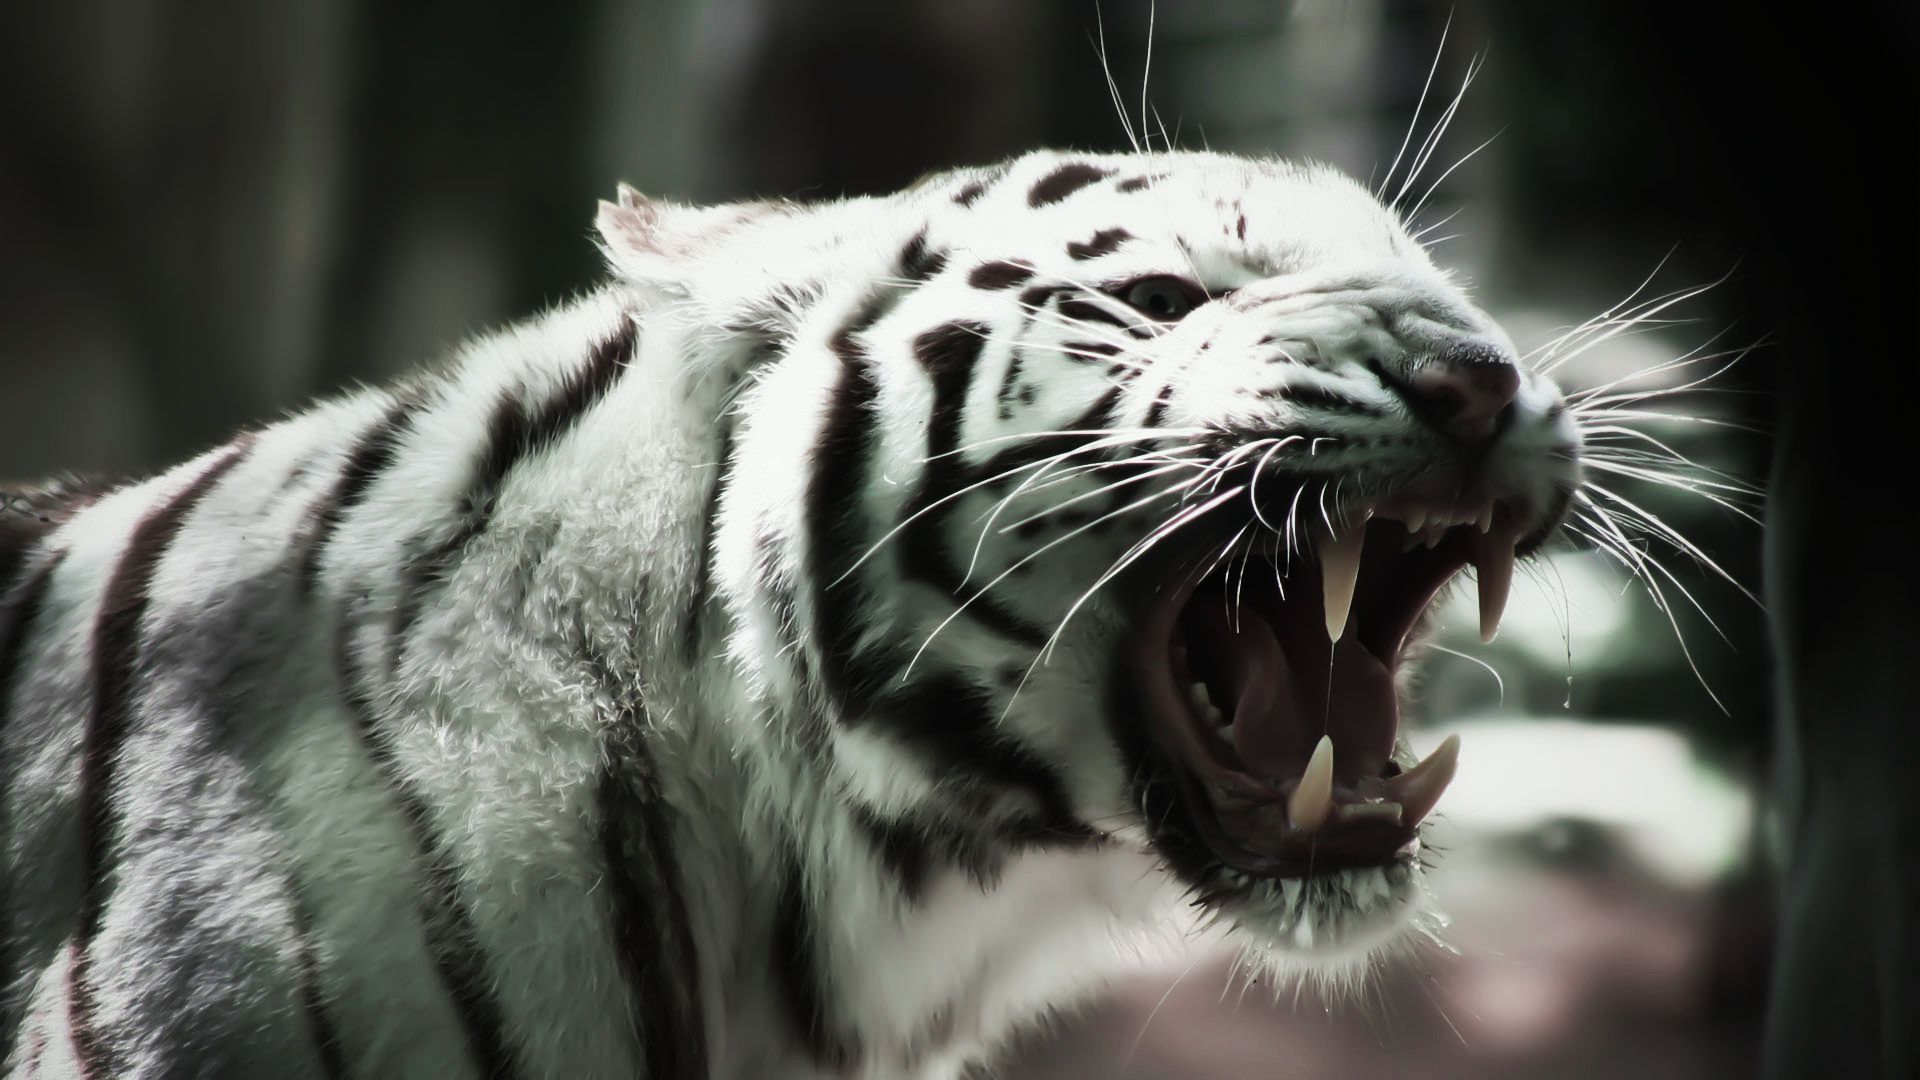 Wallpaper Tigers Big Cats Canine Tooth Fangs Angry Animals